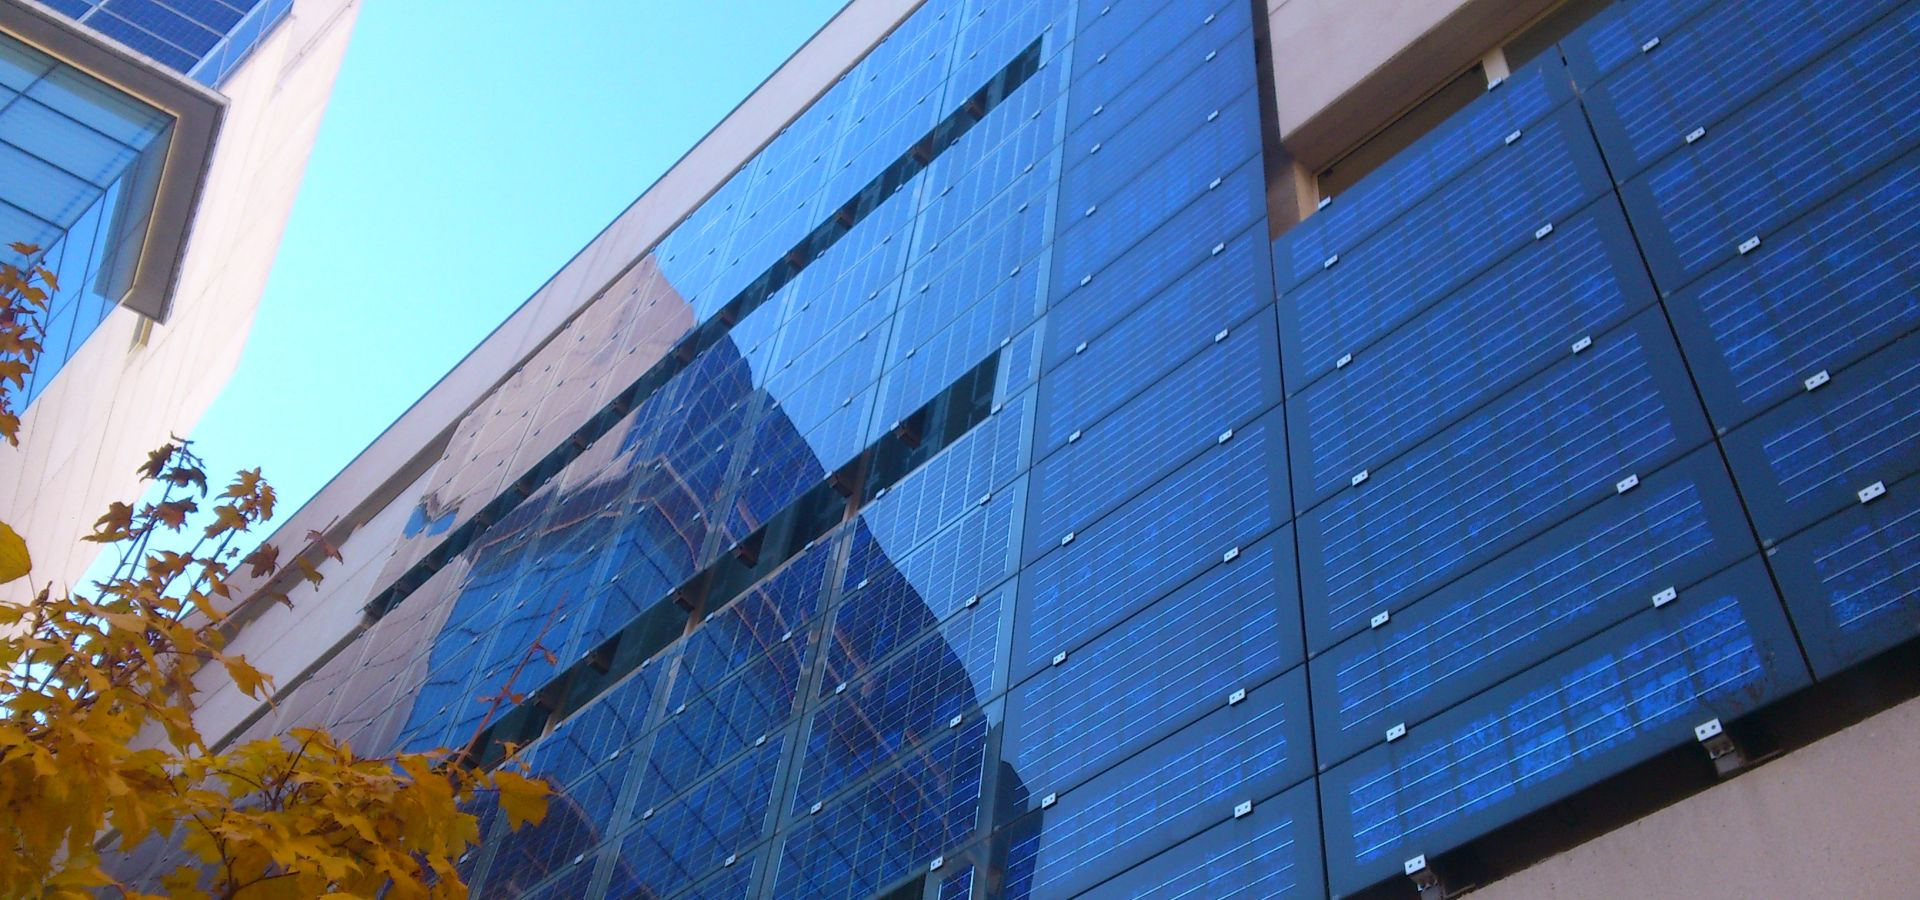 solar panels on the front of a modern building in Spain